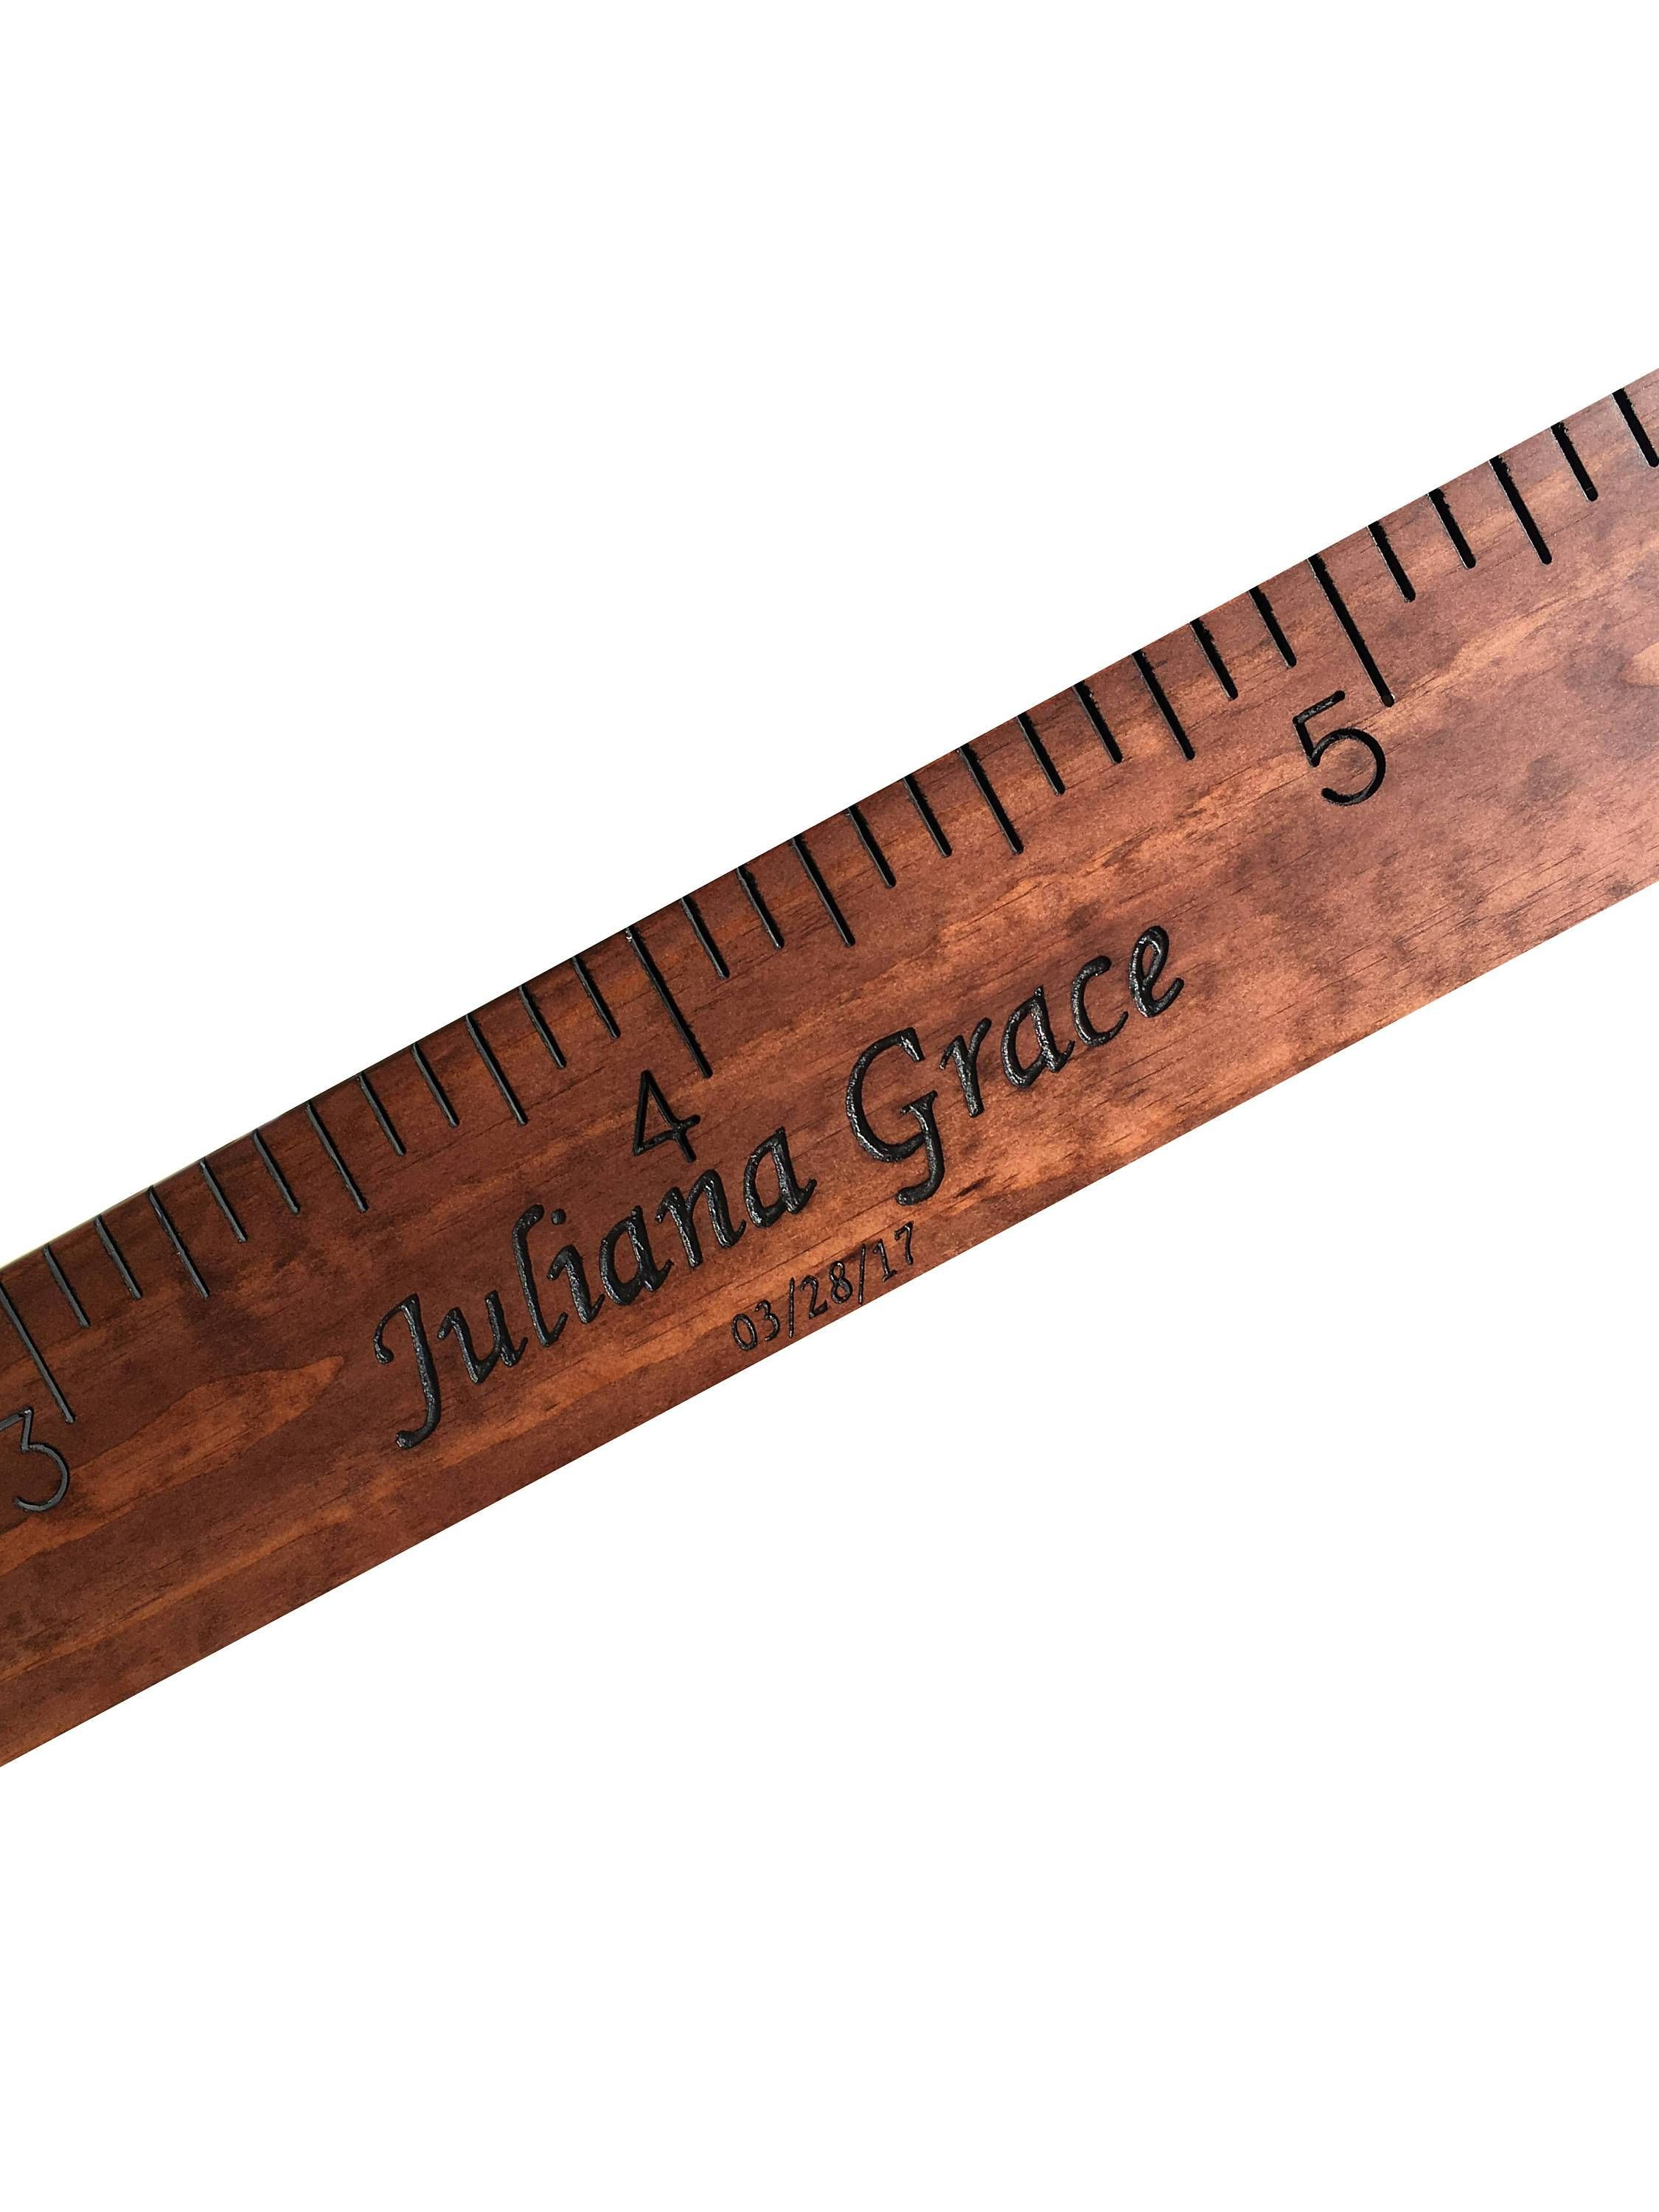 Middle edition custom hand routed wooden ruler growth chart middle edition custom hand routed wooden ruler growth chart height measurement chart geenschuldenfo Choice Image